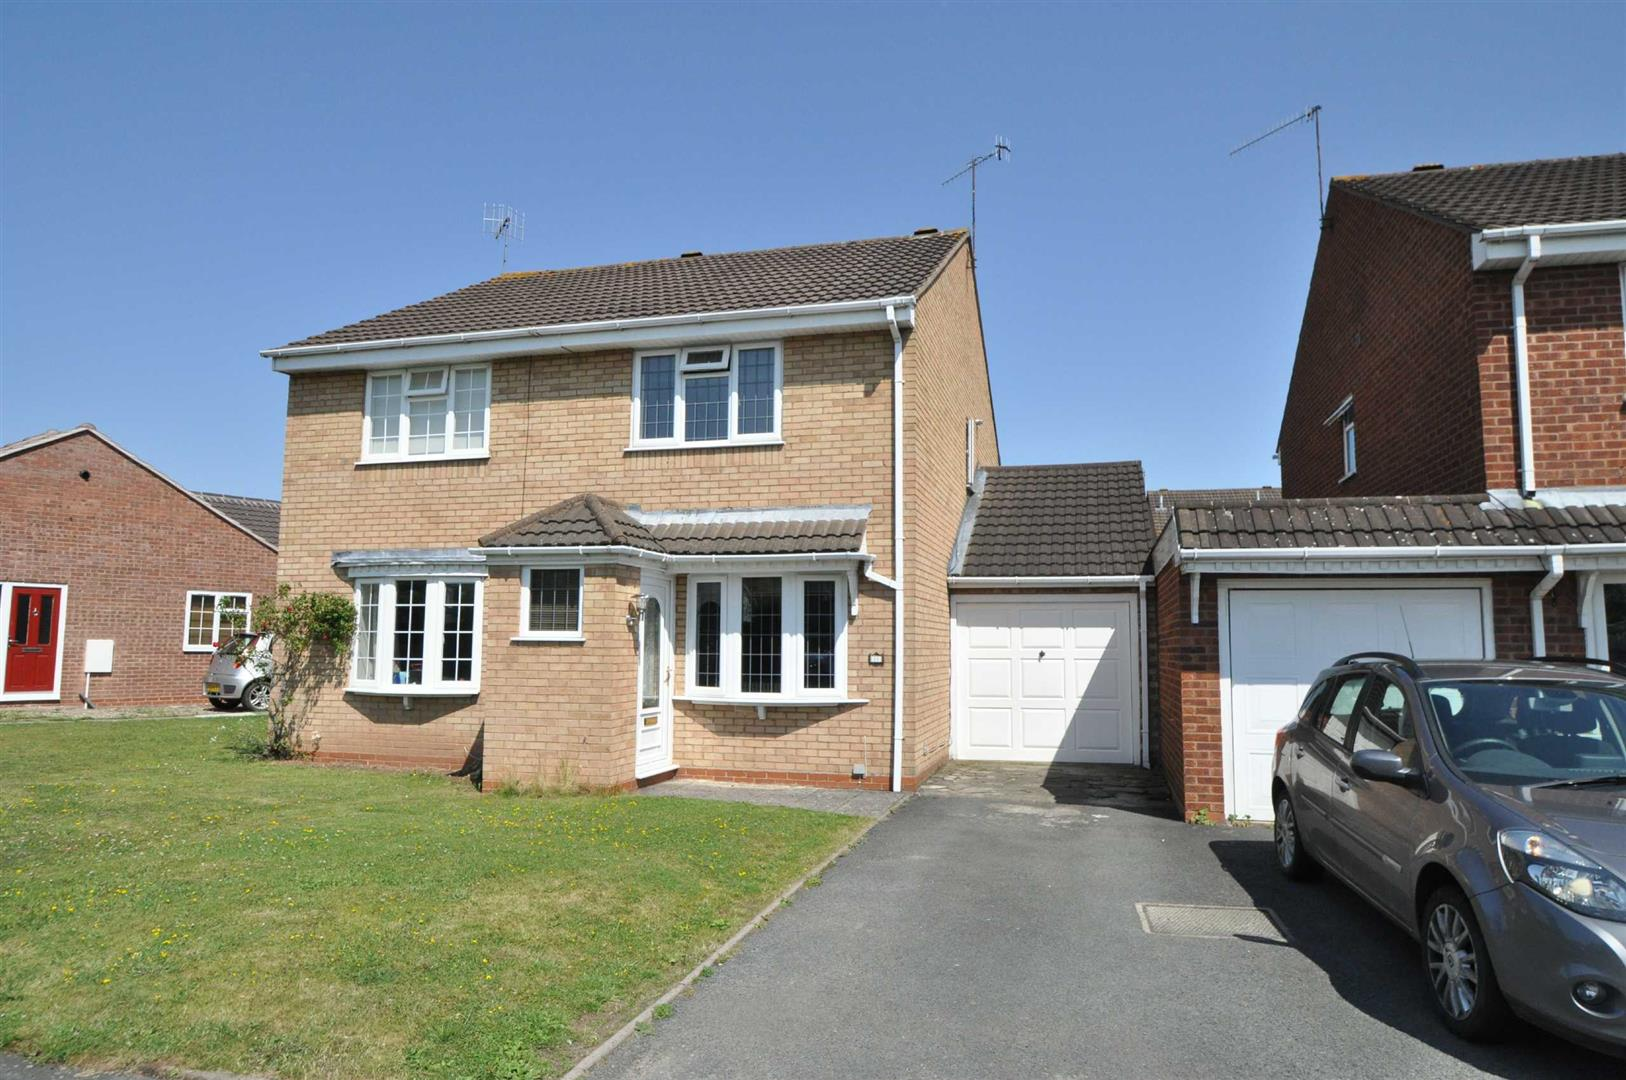 2 Bedrooms Semi Detached House for rent in Newland Road, Droitwich Spa